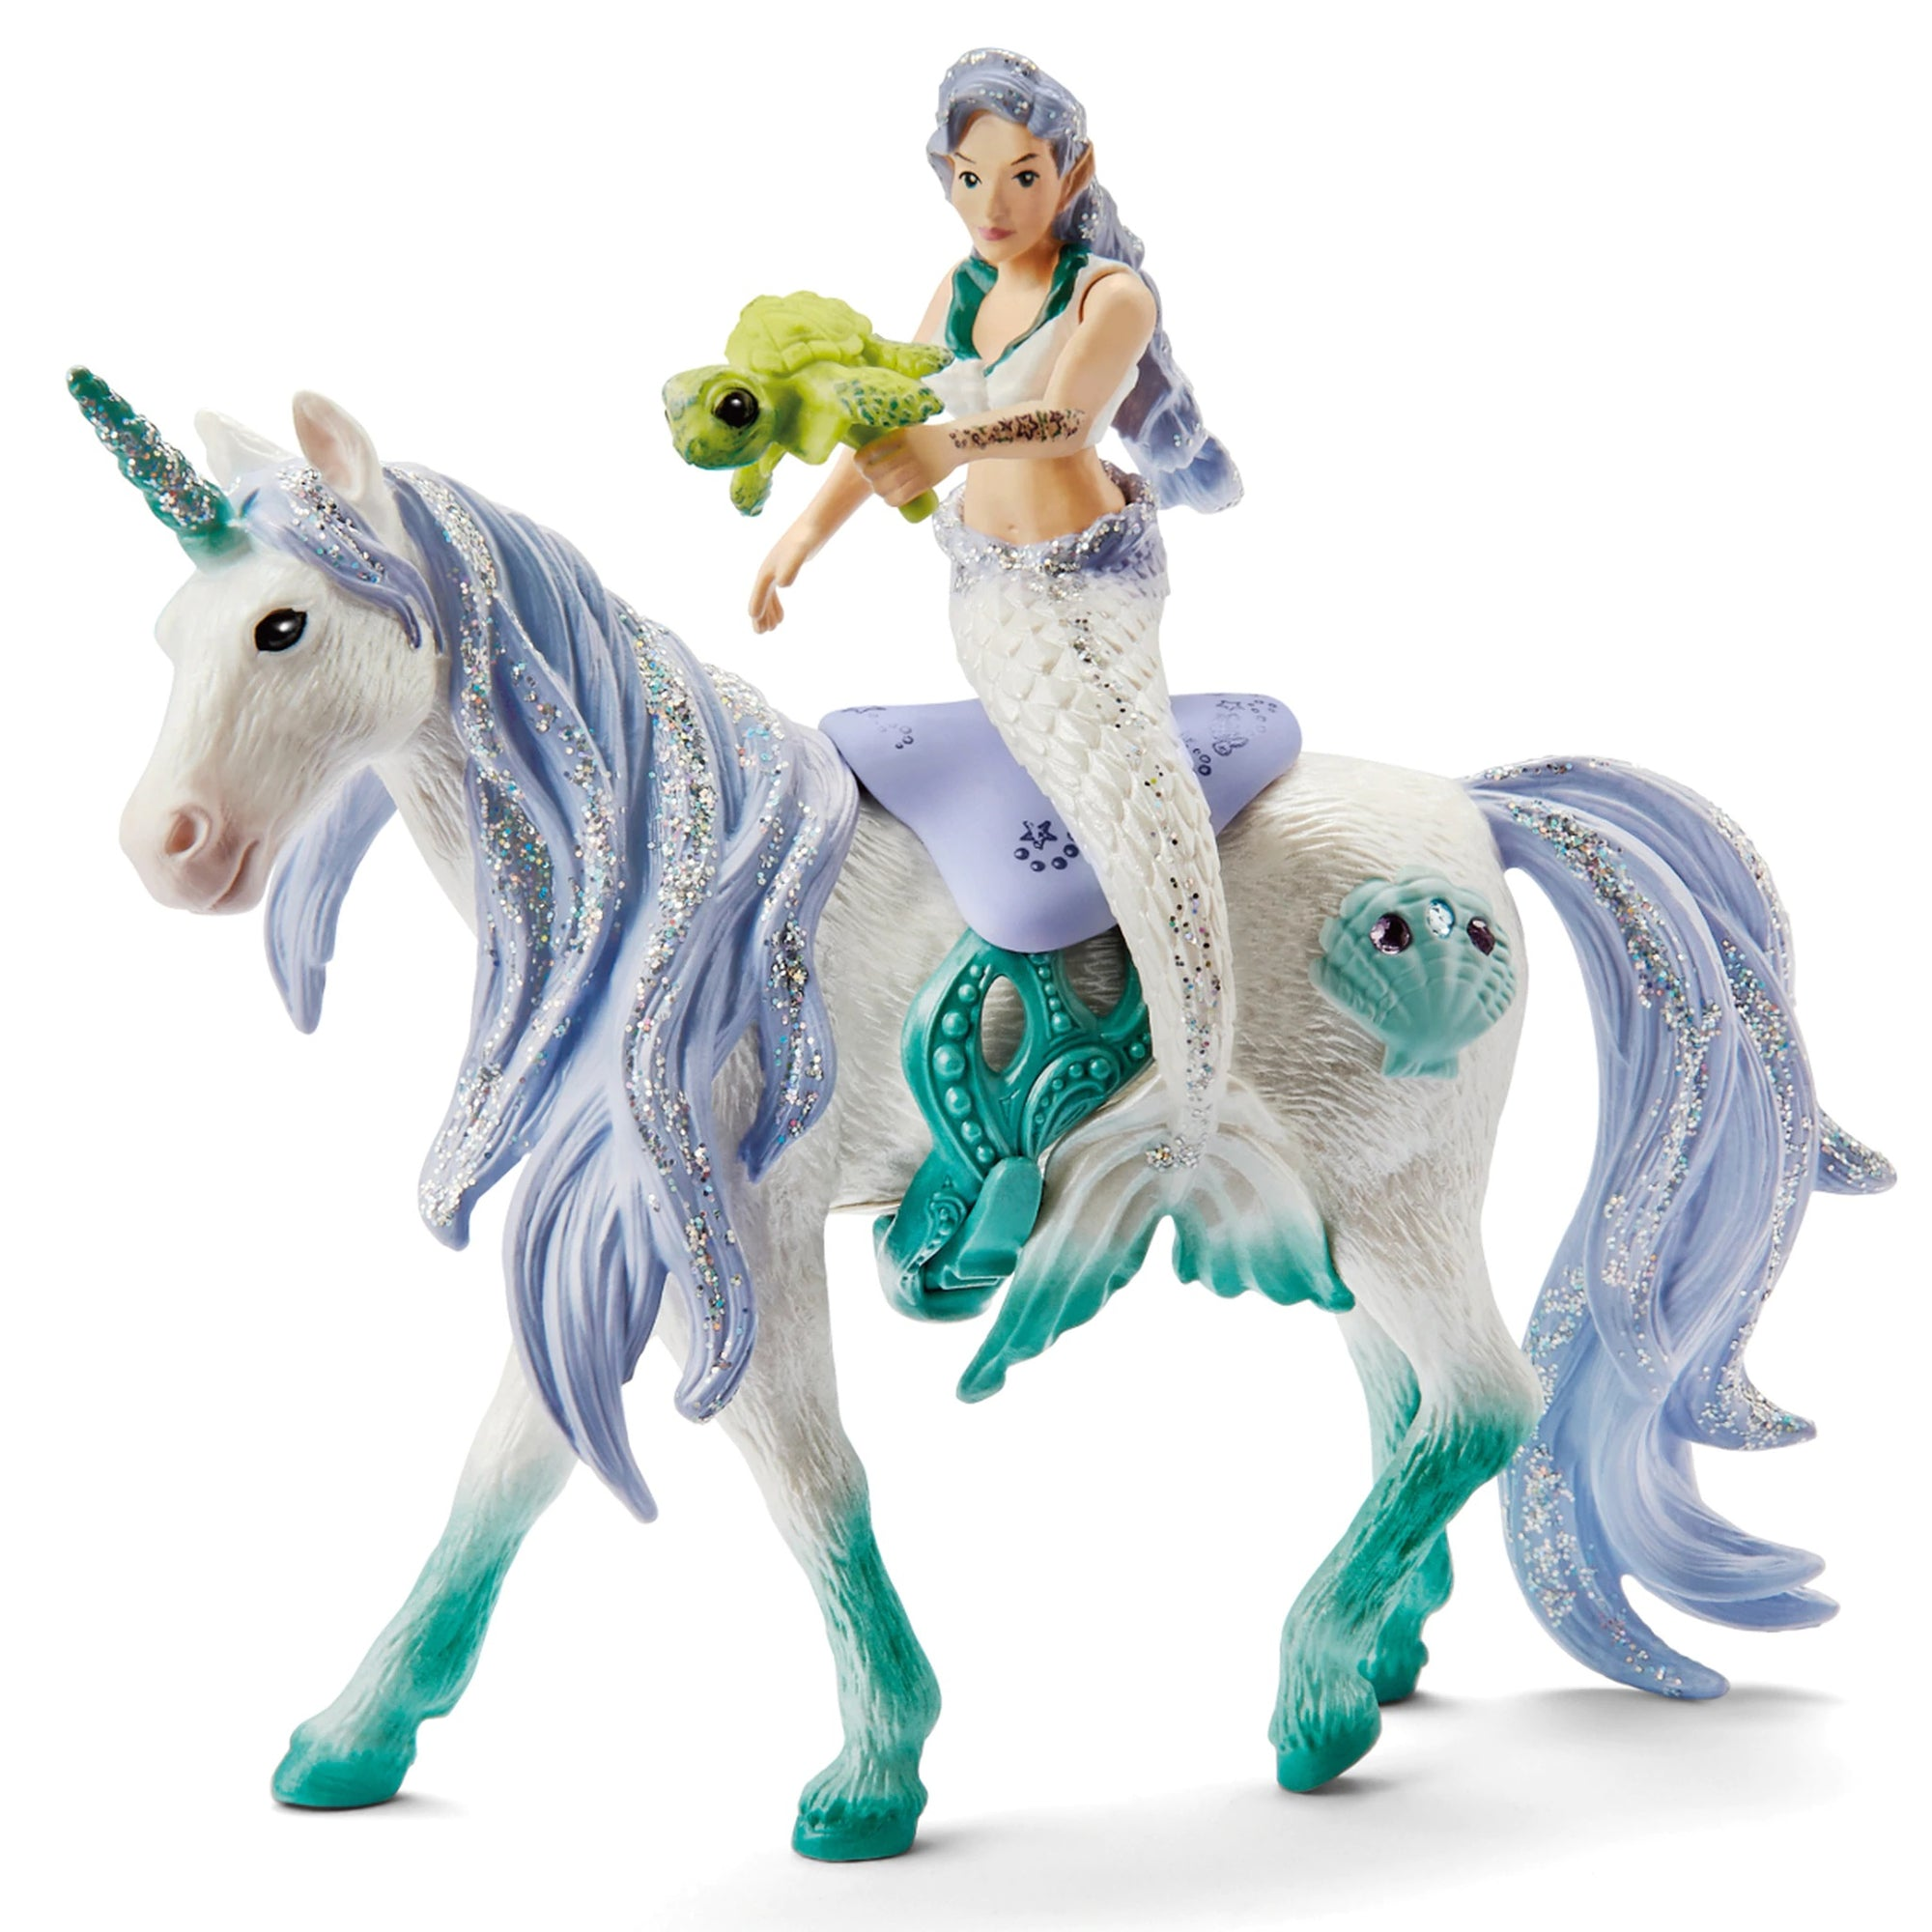 Schleich 42609 Mermaid Riding Sea Unicorn